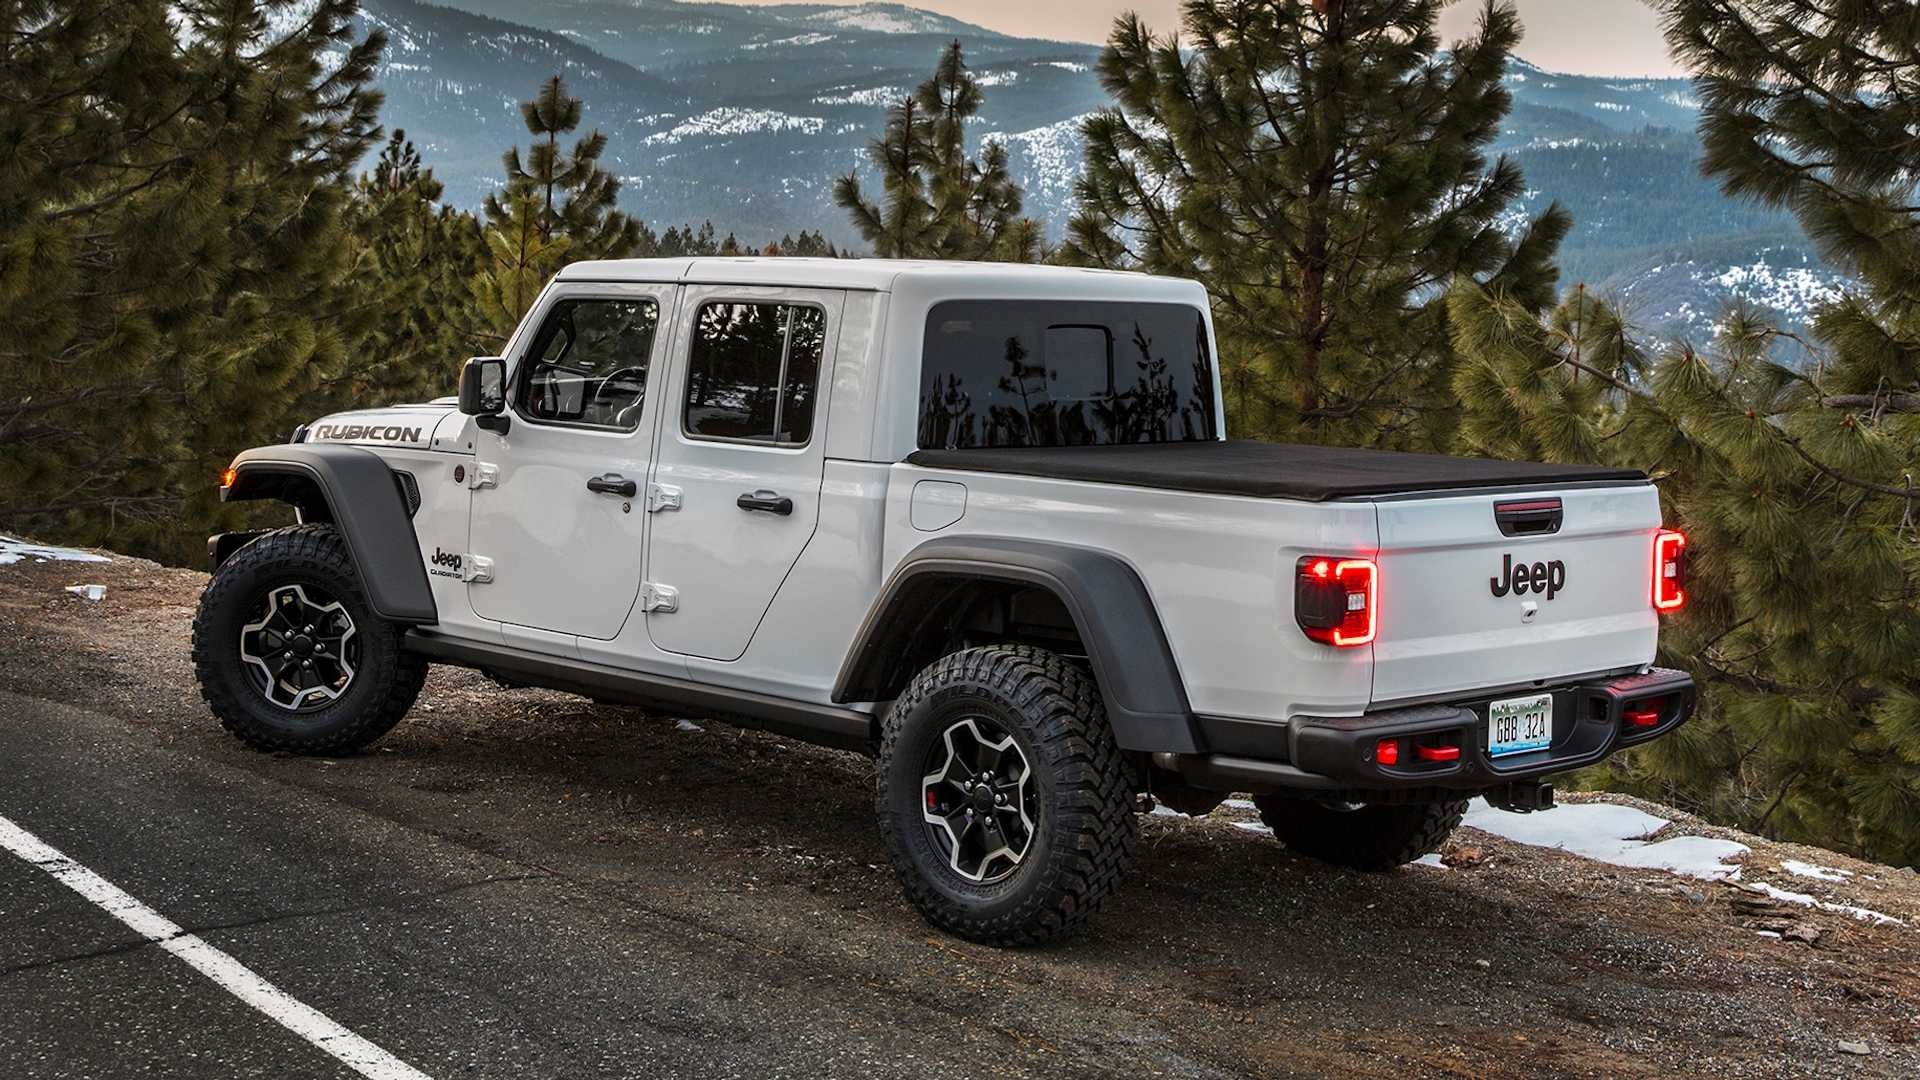 22 Best Review 2020 Jeep Gladiator Video Ratings with 2020 Jeep Gladiator Video